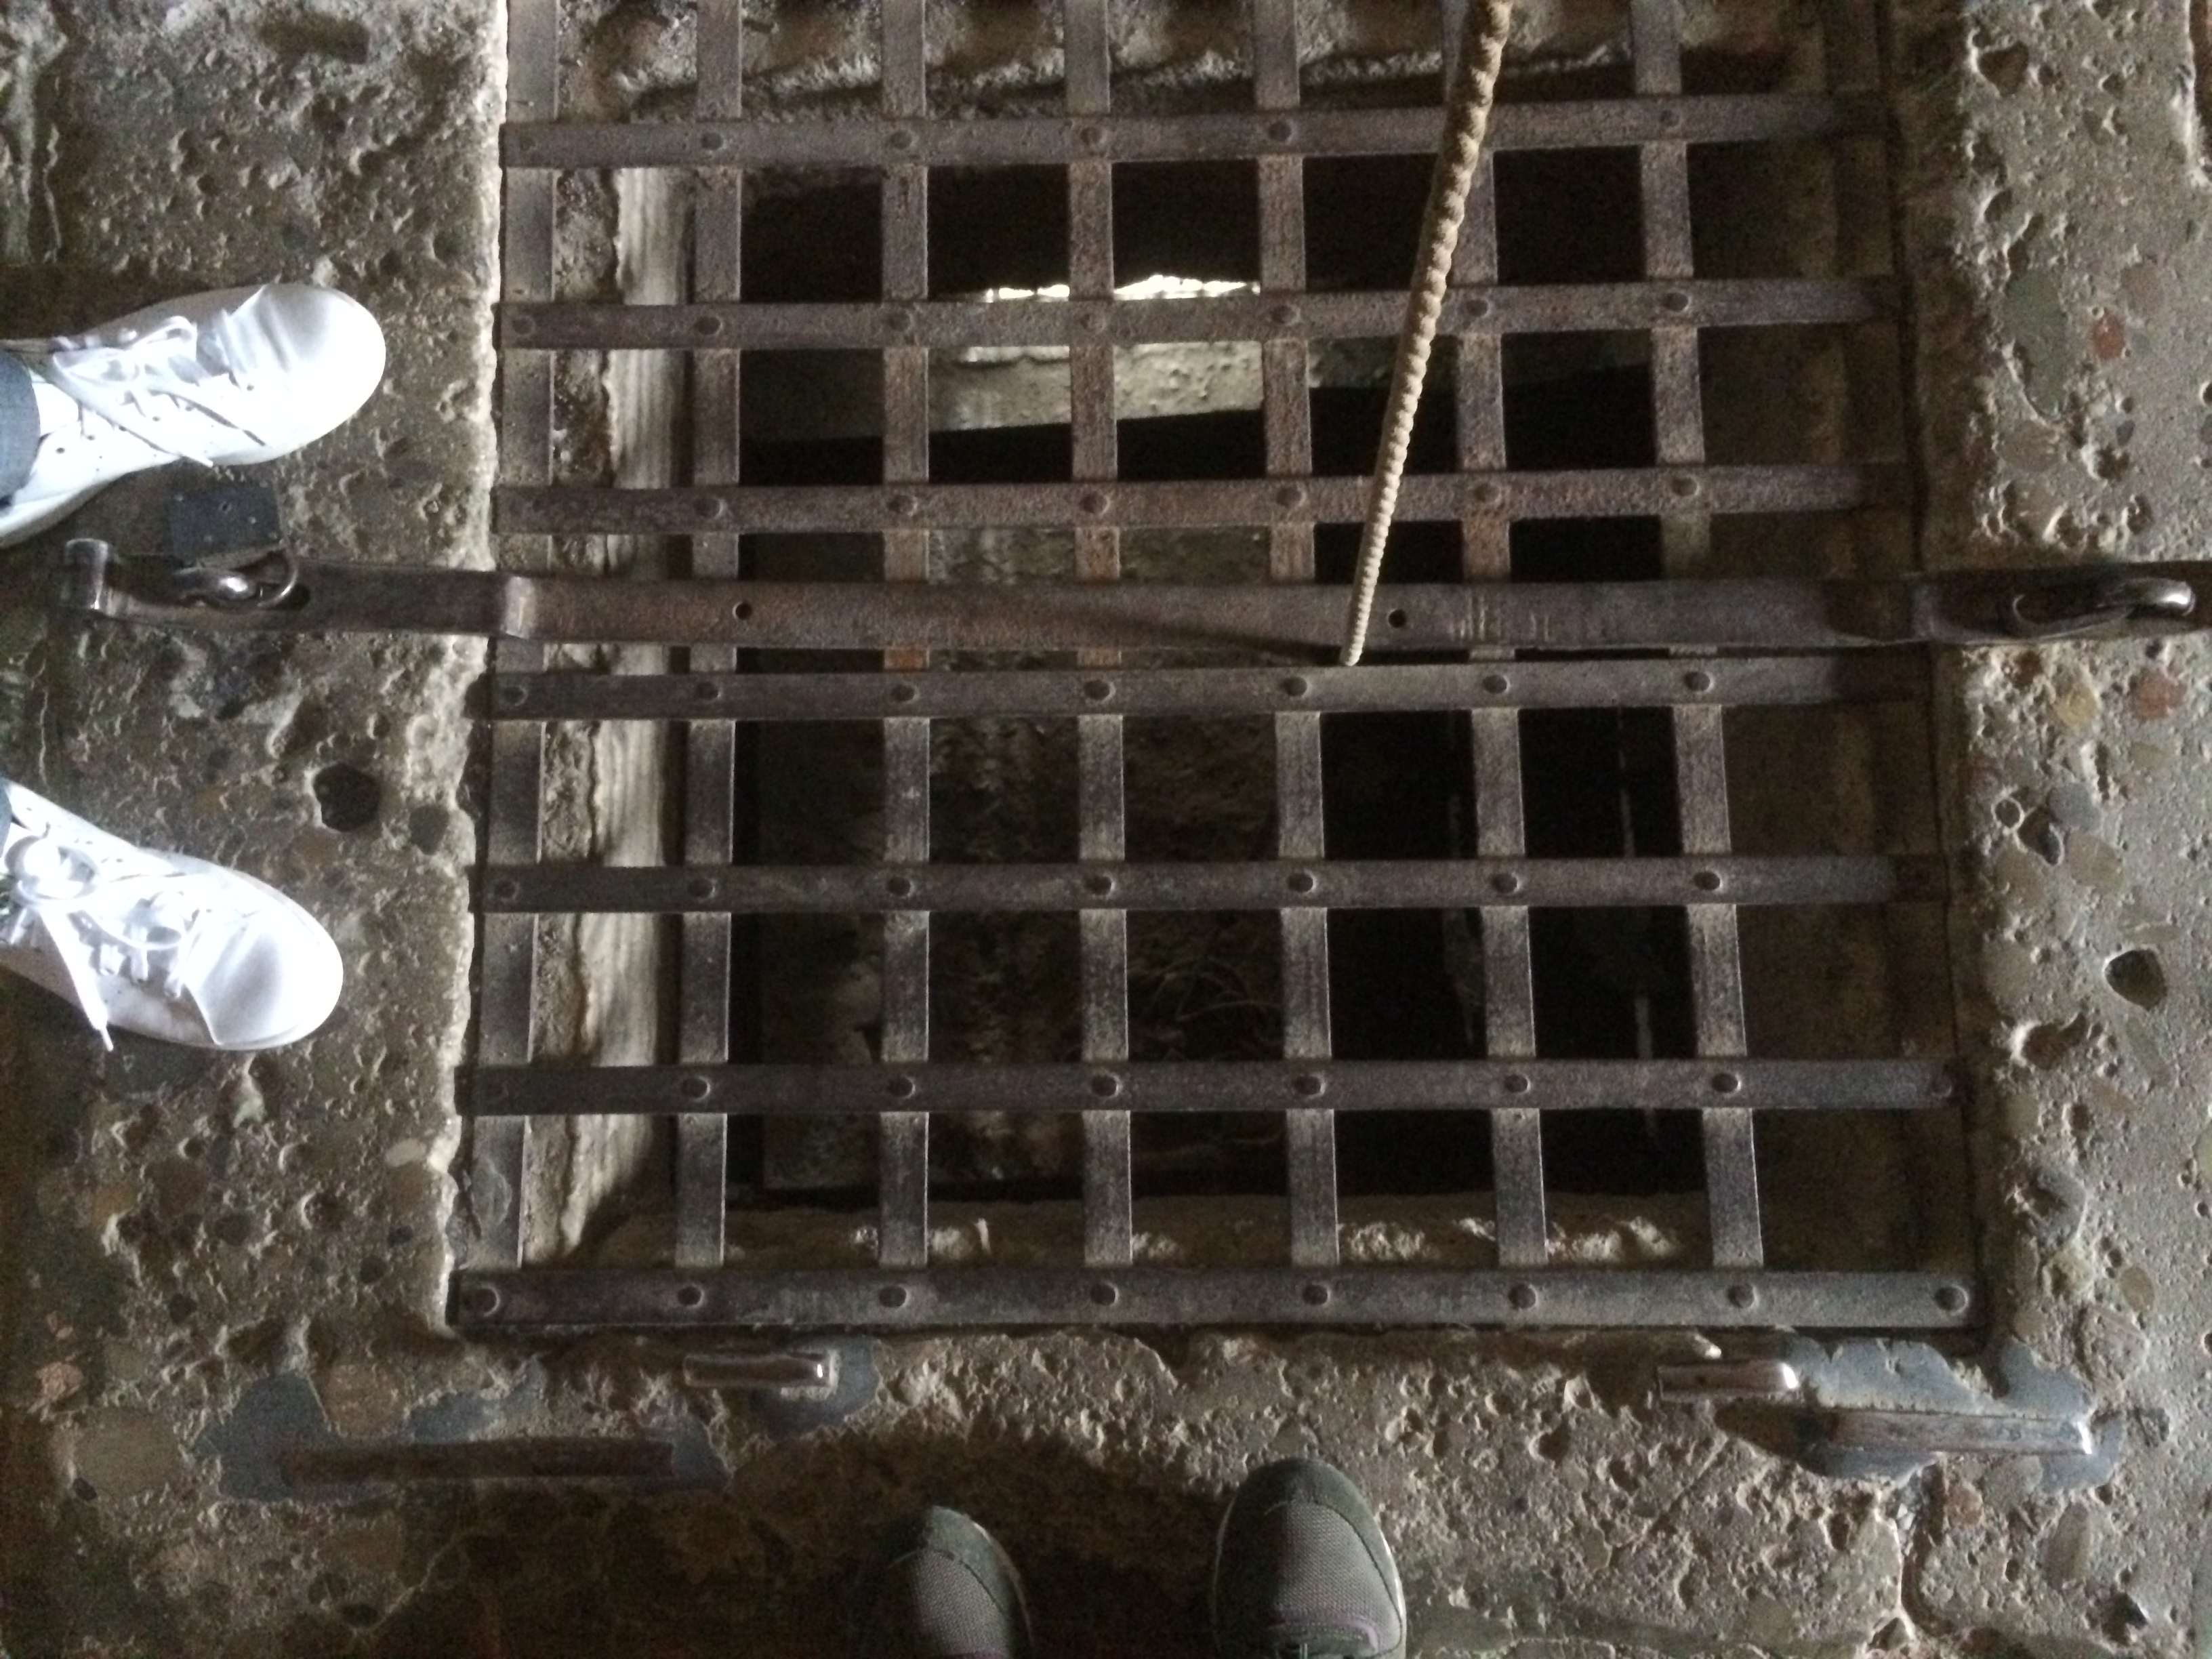 where they lower down prisoners to their cell